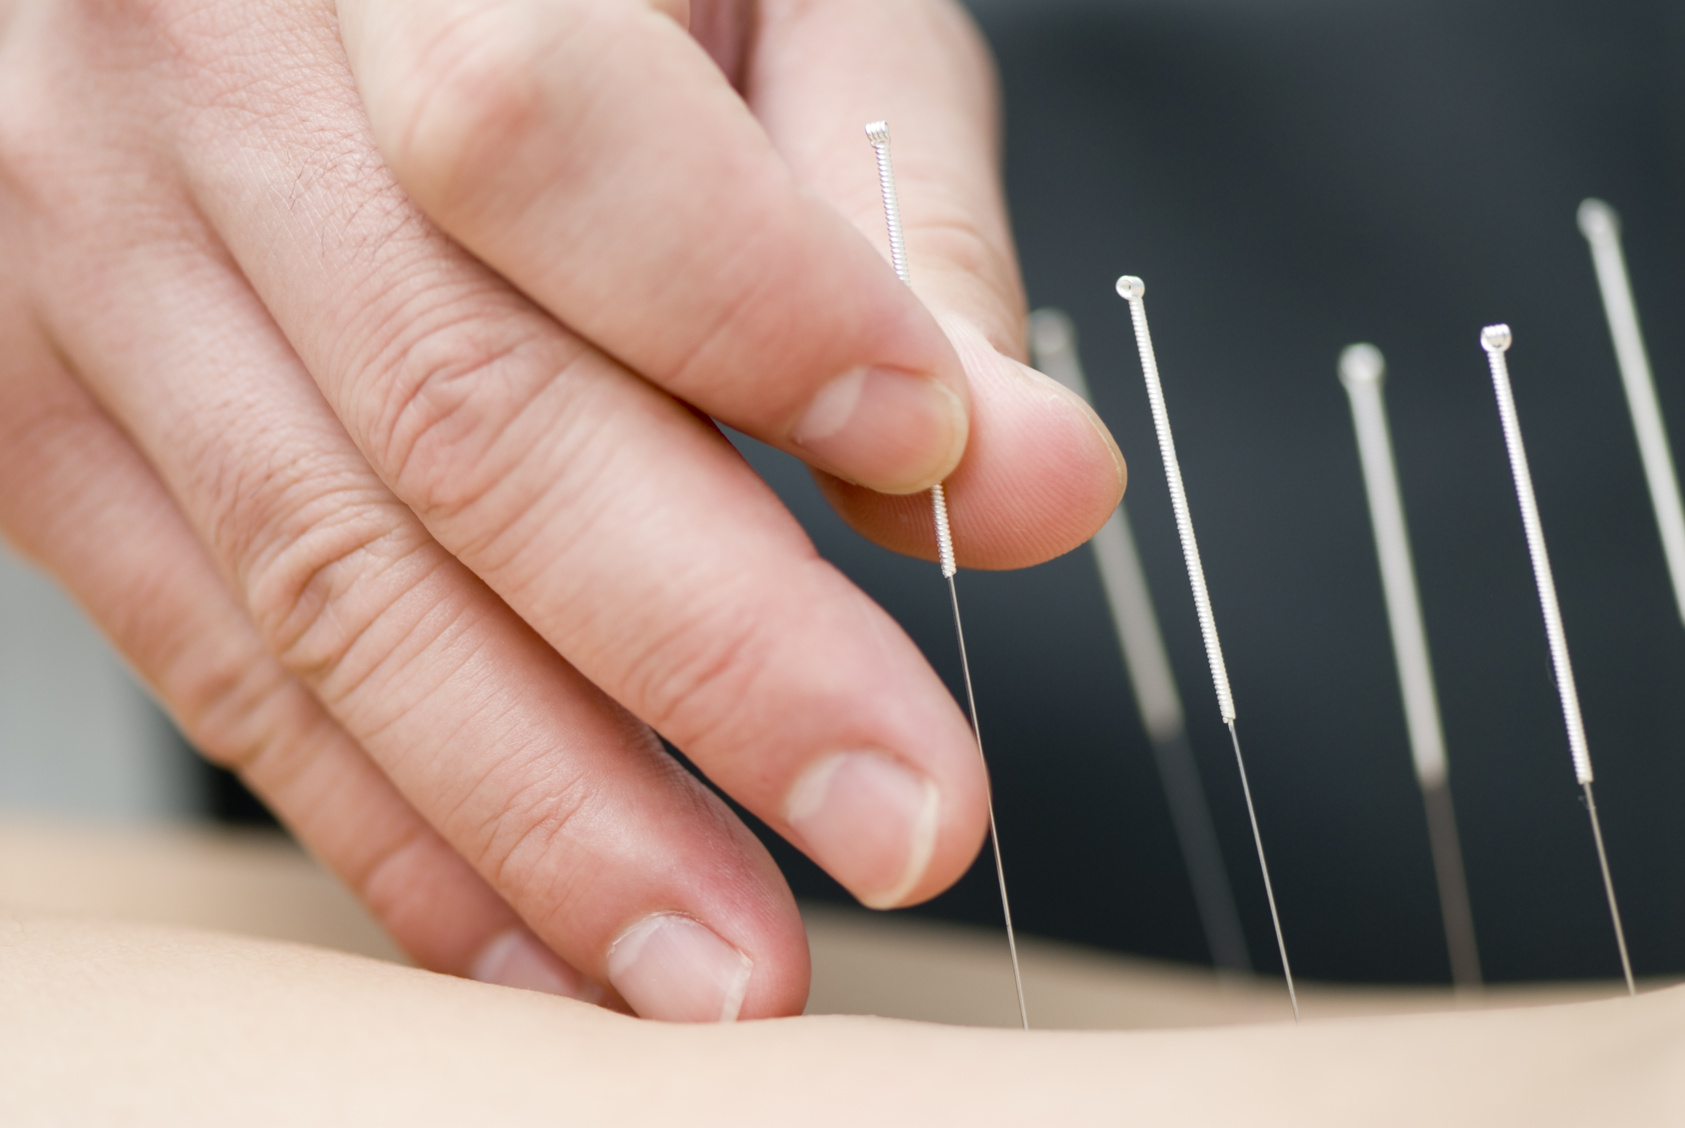 Acupuncture & Infertility